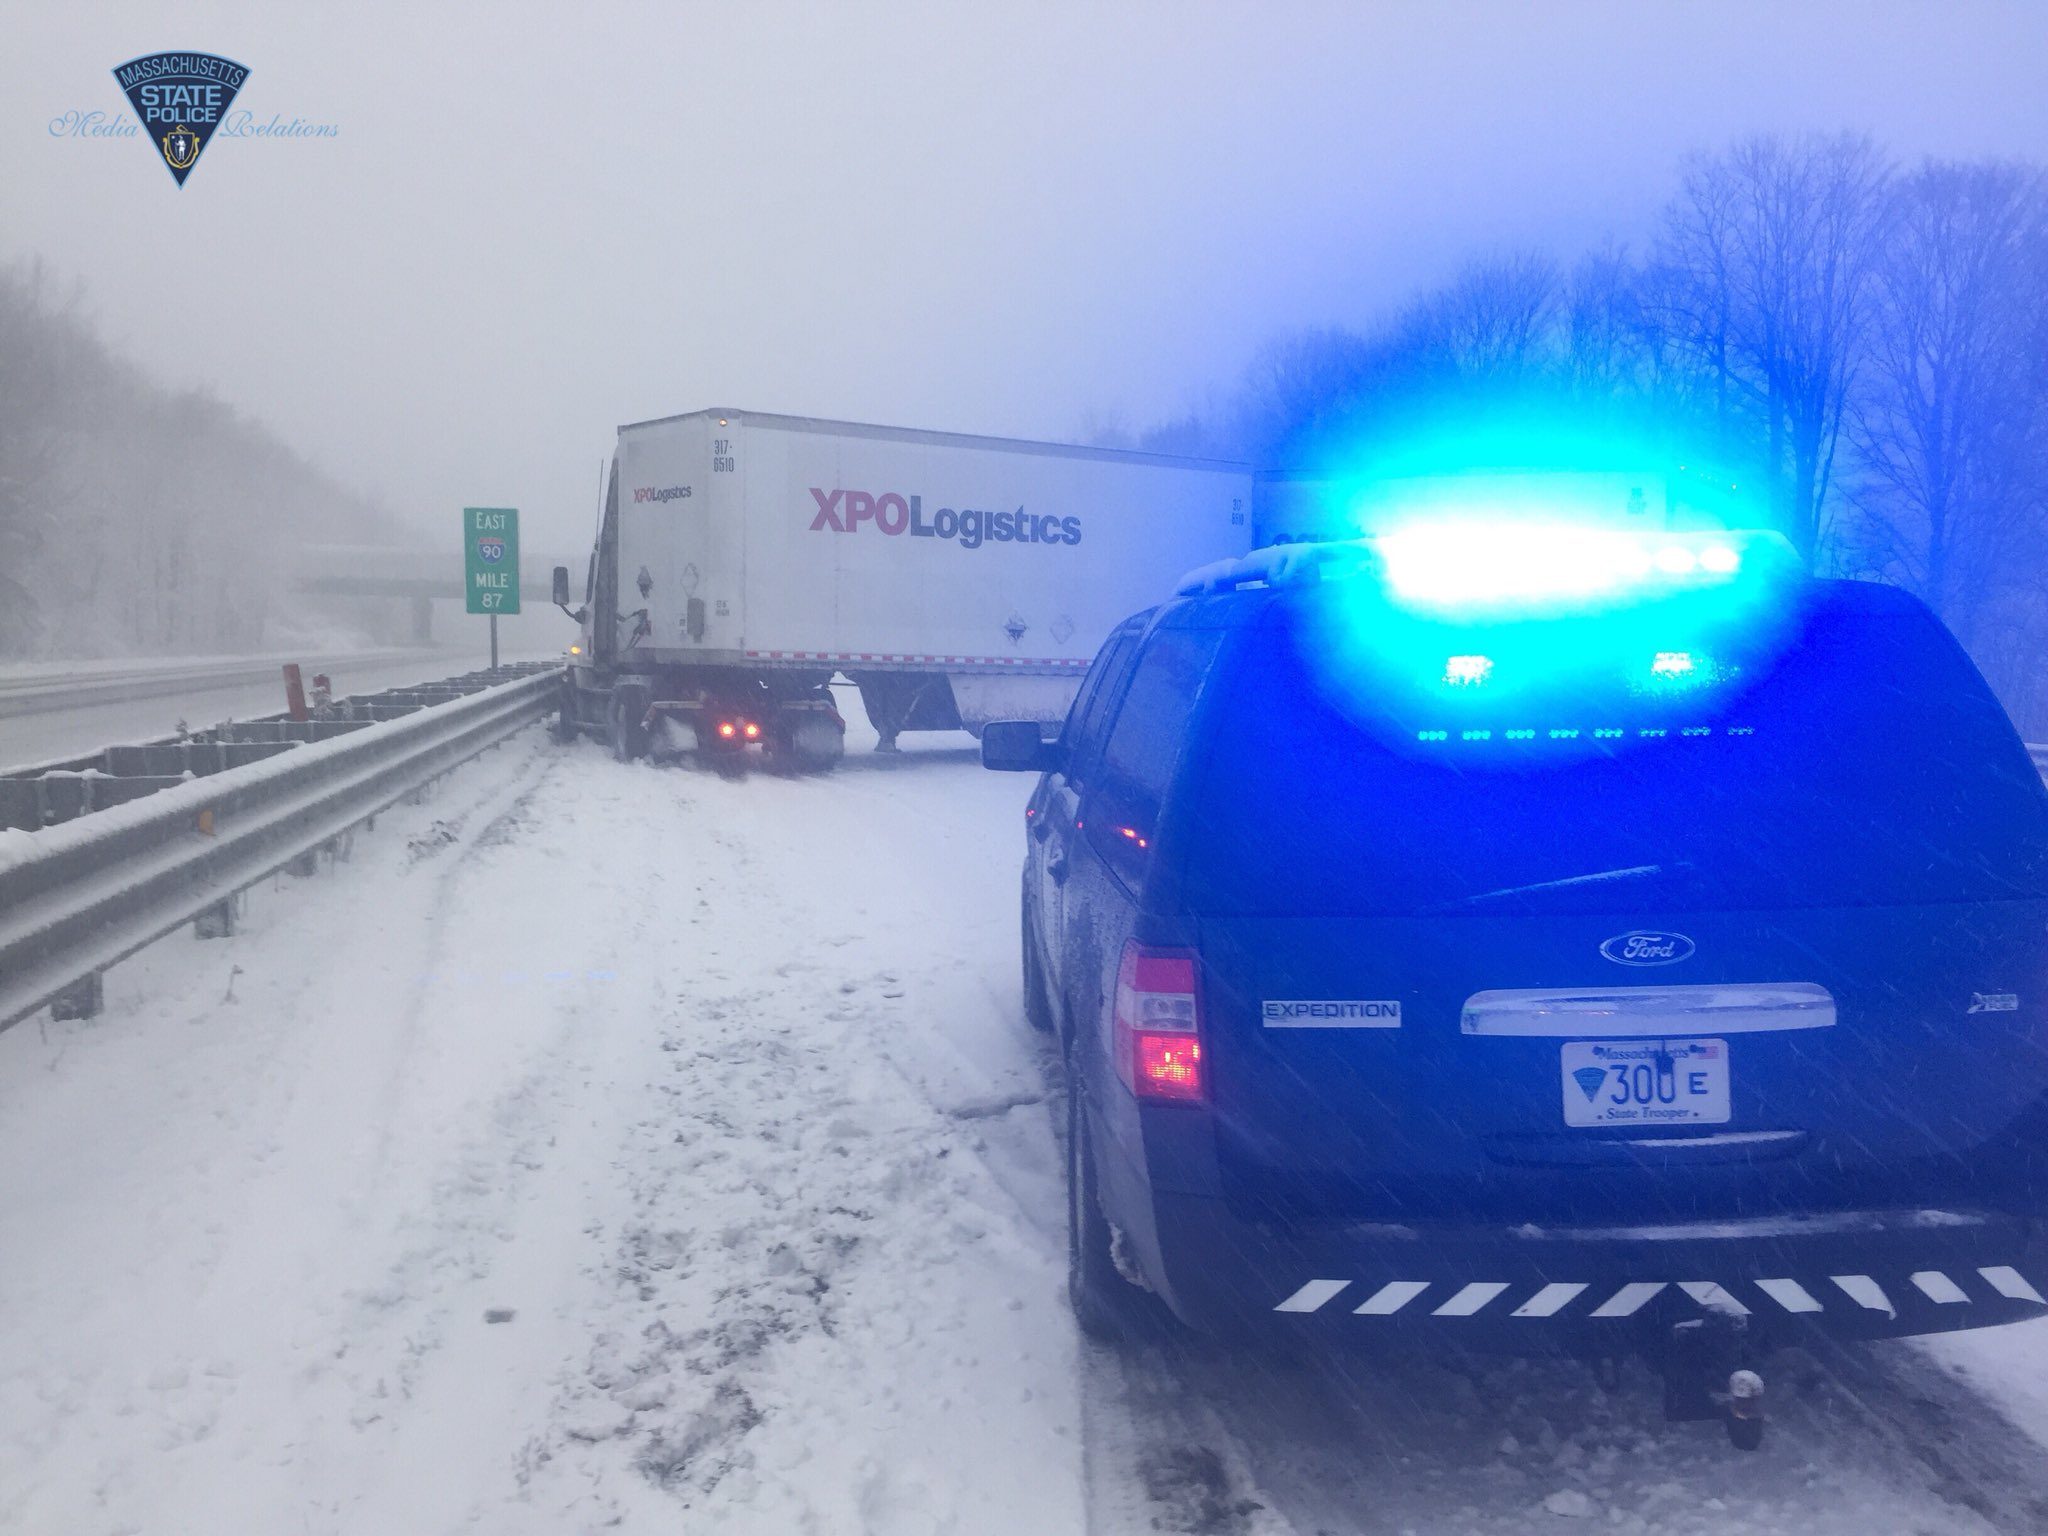 Massachusetts State Police released this image of a tandem tractor-trailer truck jackknifed on the Massachusetts Turnpike in Charlton, Tuesday, March 13, 2013.